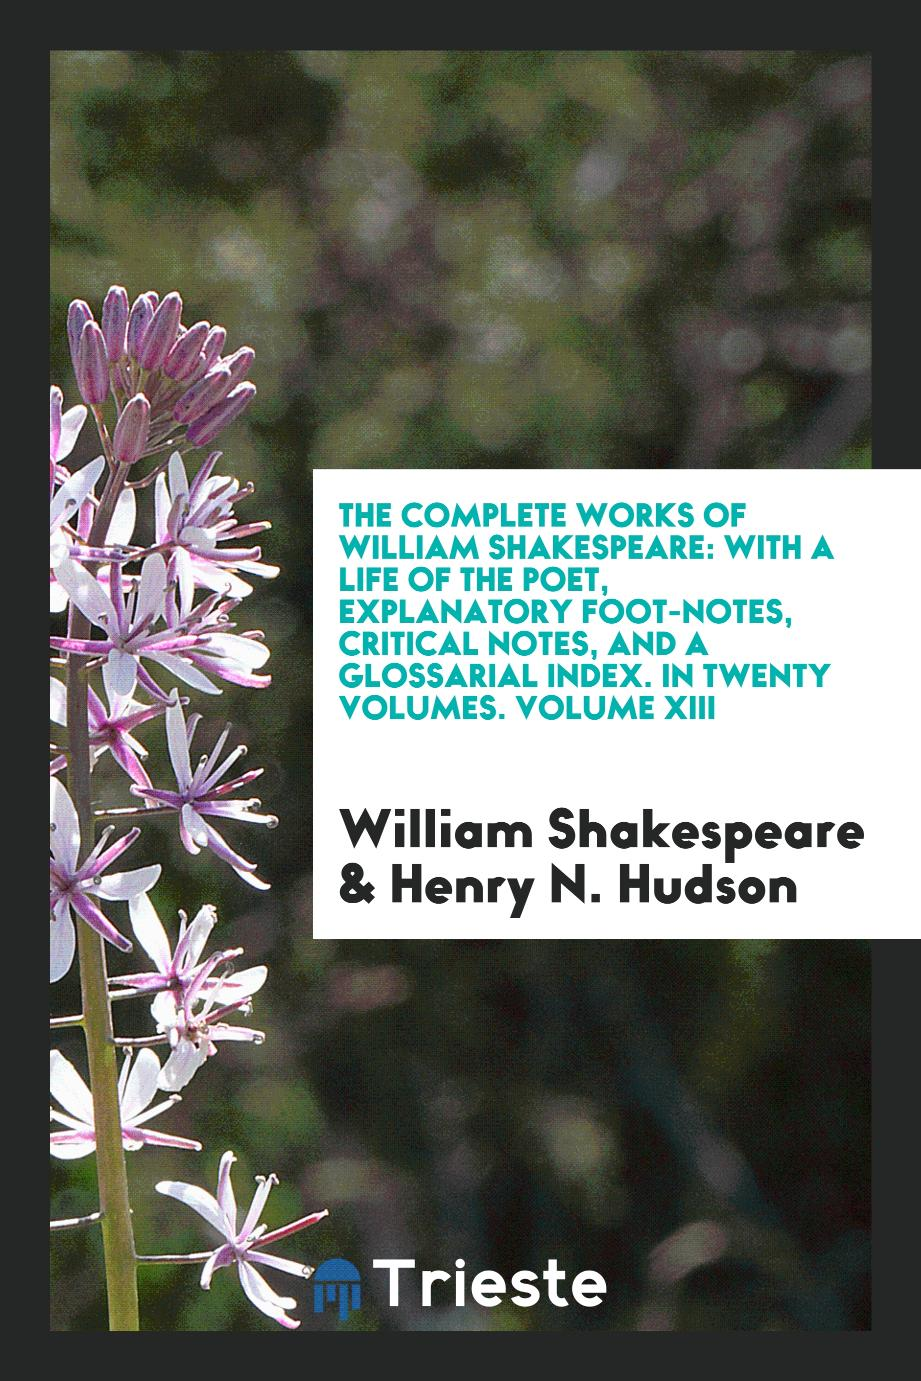 The complete works of William Shakespeare: with a life of the poet, explanatory foot-notes, critical notes, and a glossarial index. In twenty volumes. Volume XIII